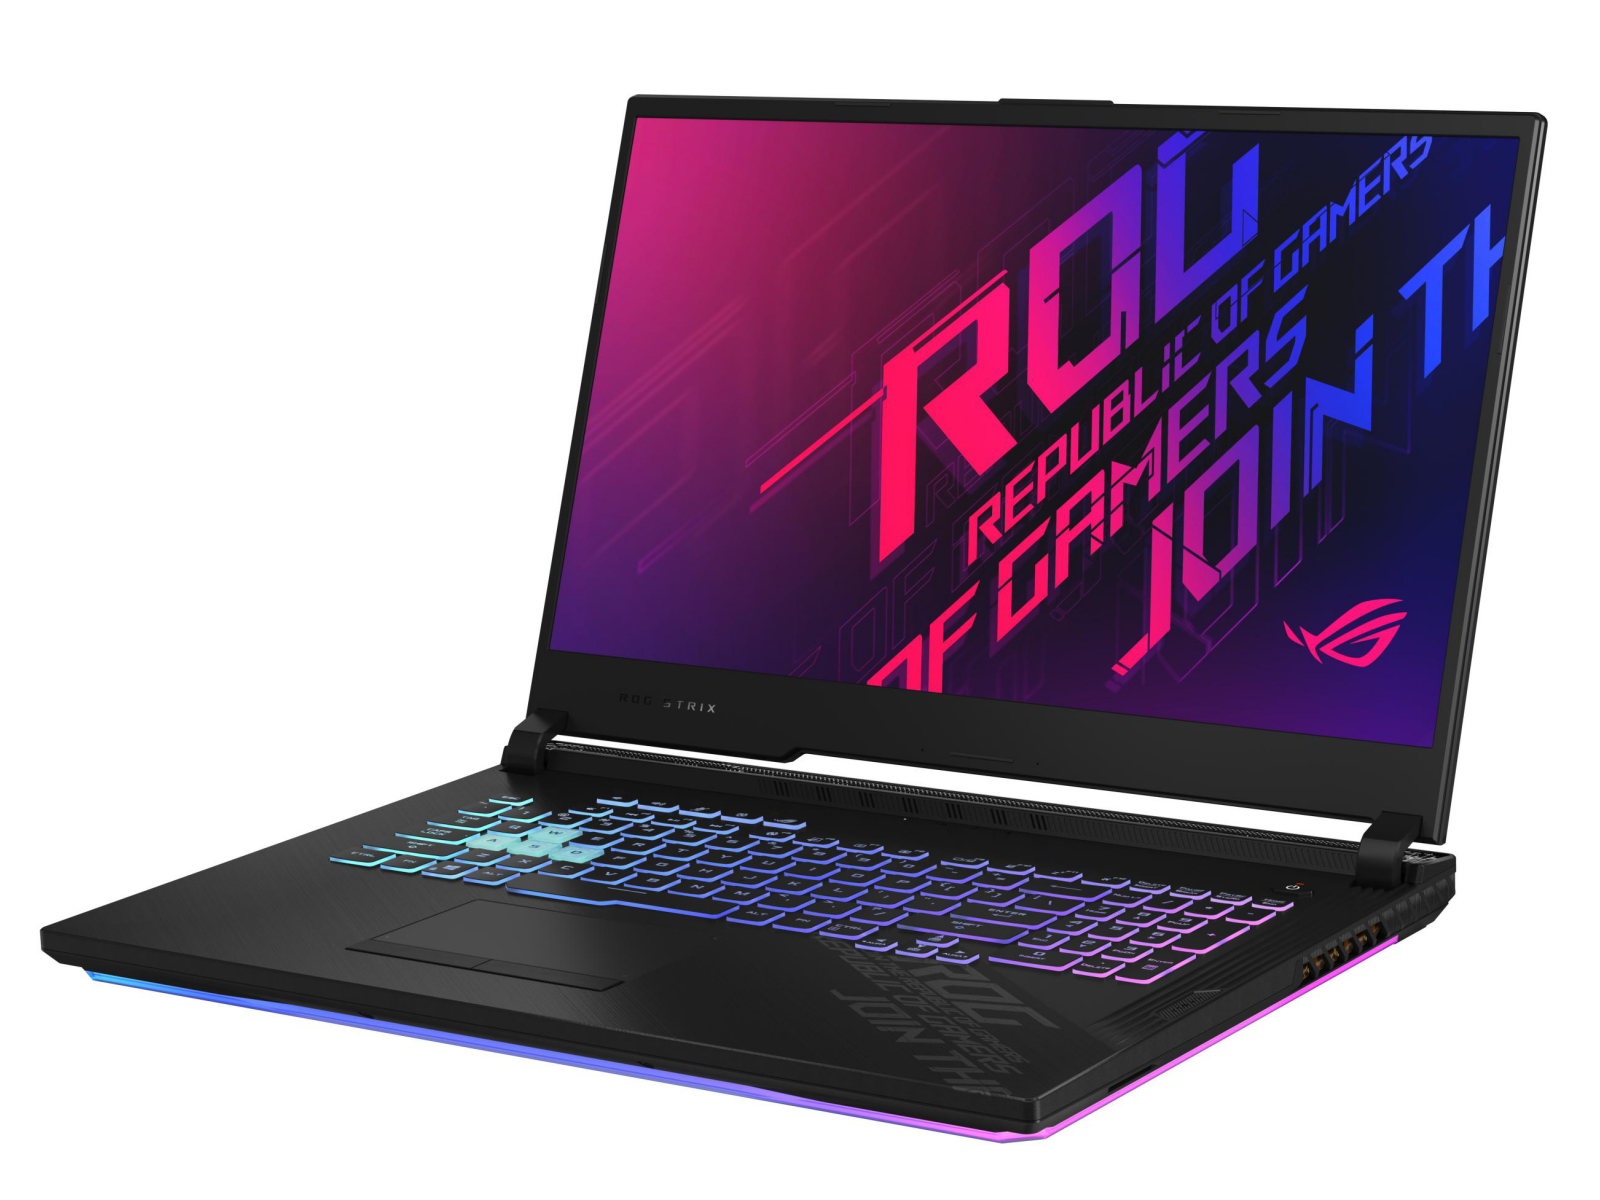 Asus ROG Strix G17 G712LWS in review: Powerful gaming machine with  integrated light show - NotebookCheck.net Reviews